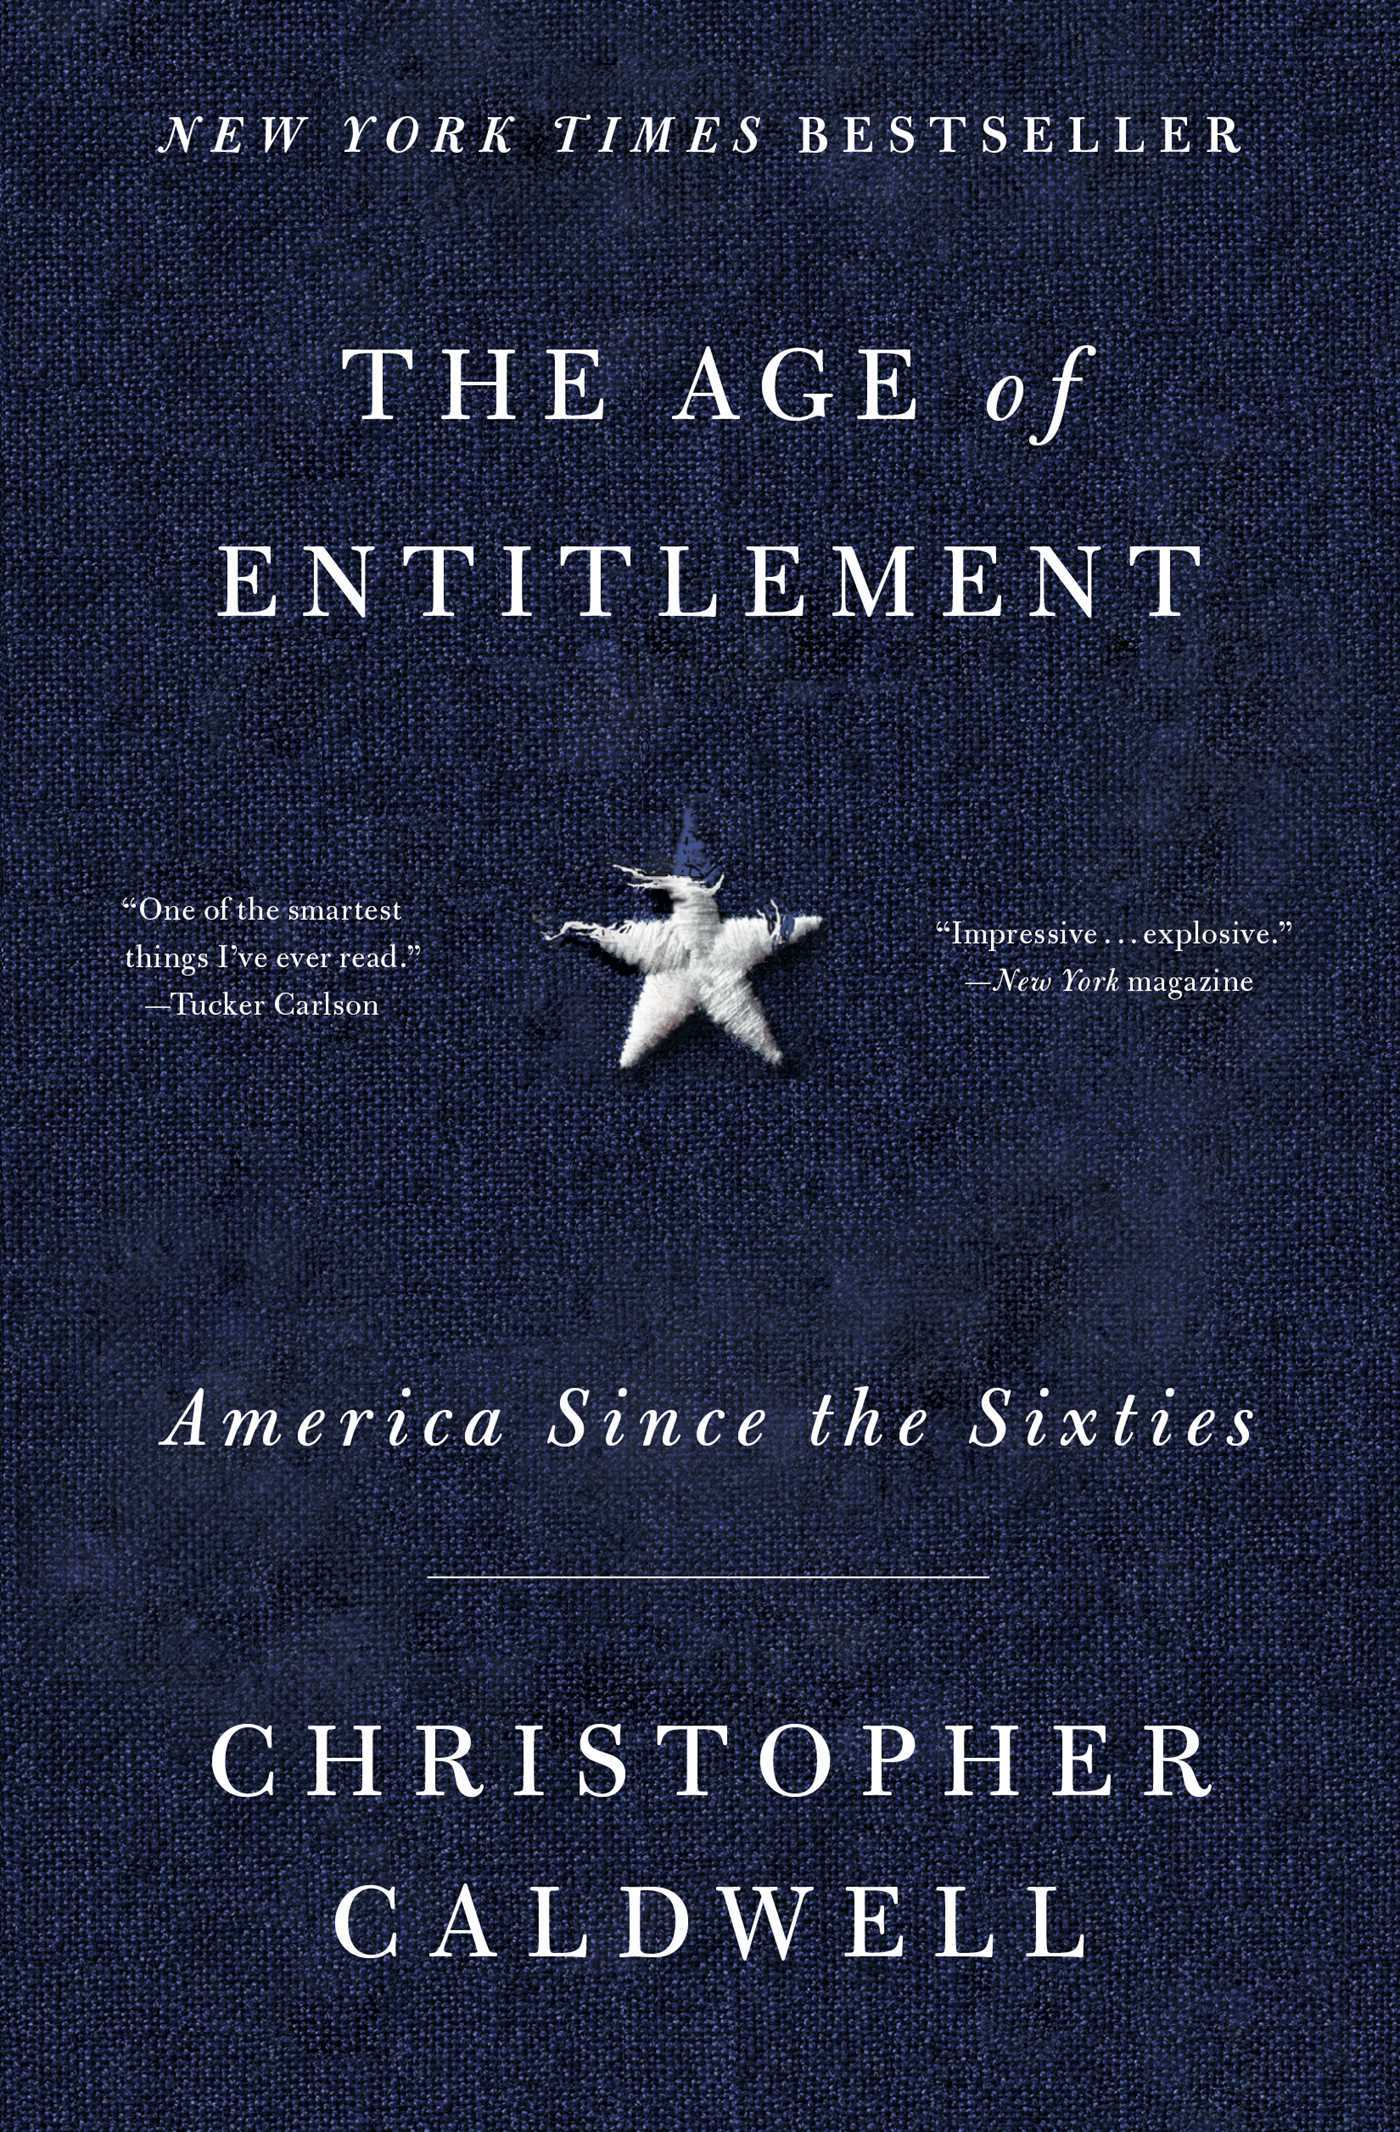 The age of entitlement America since the sixties cover image